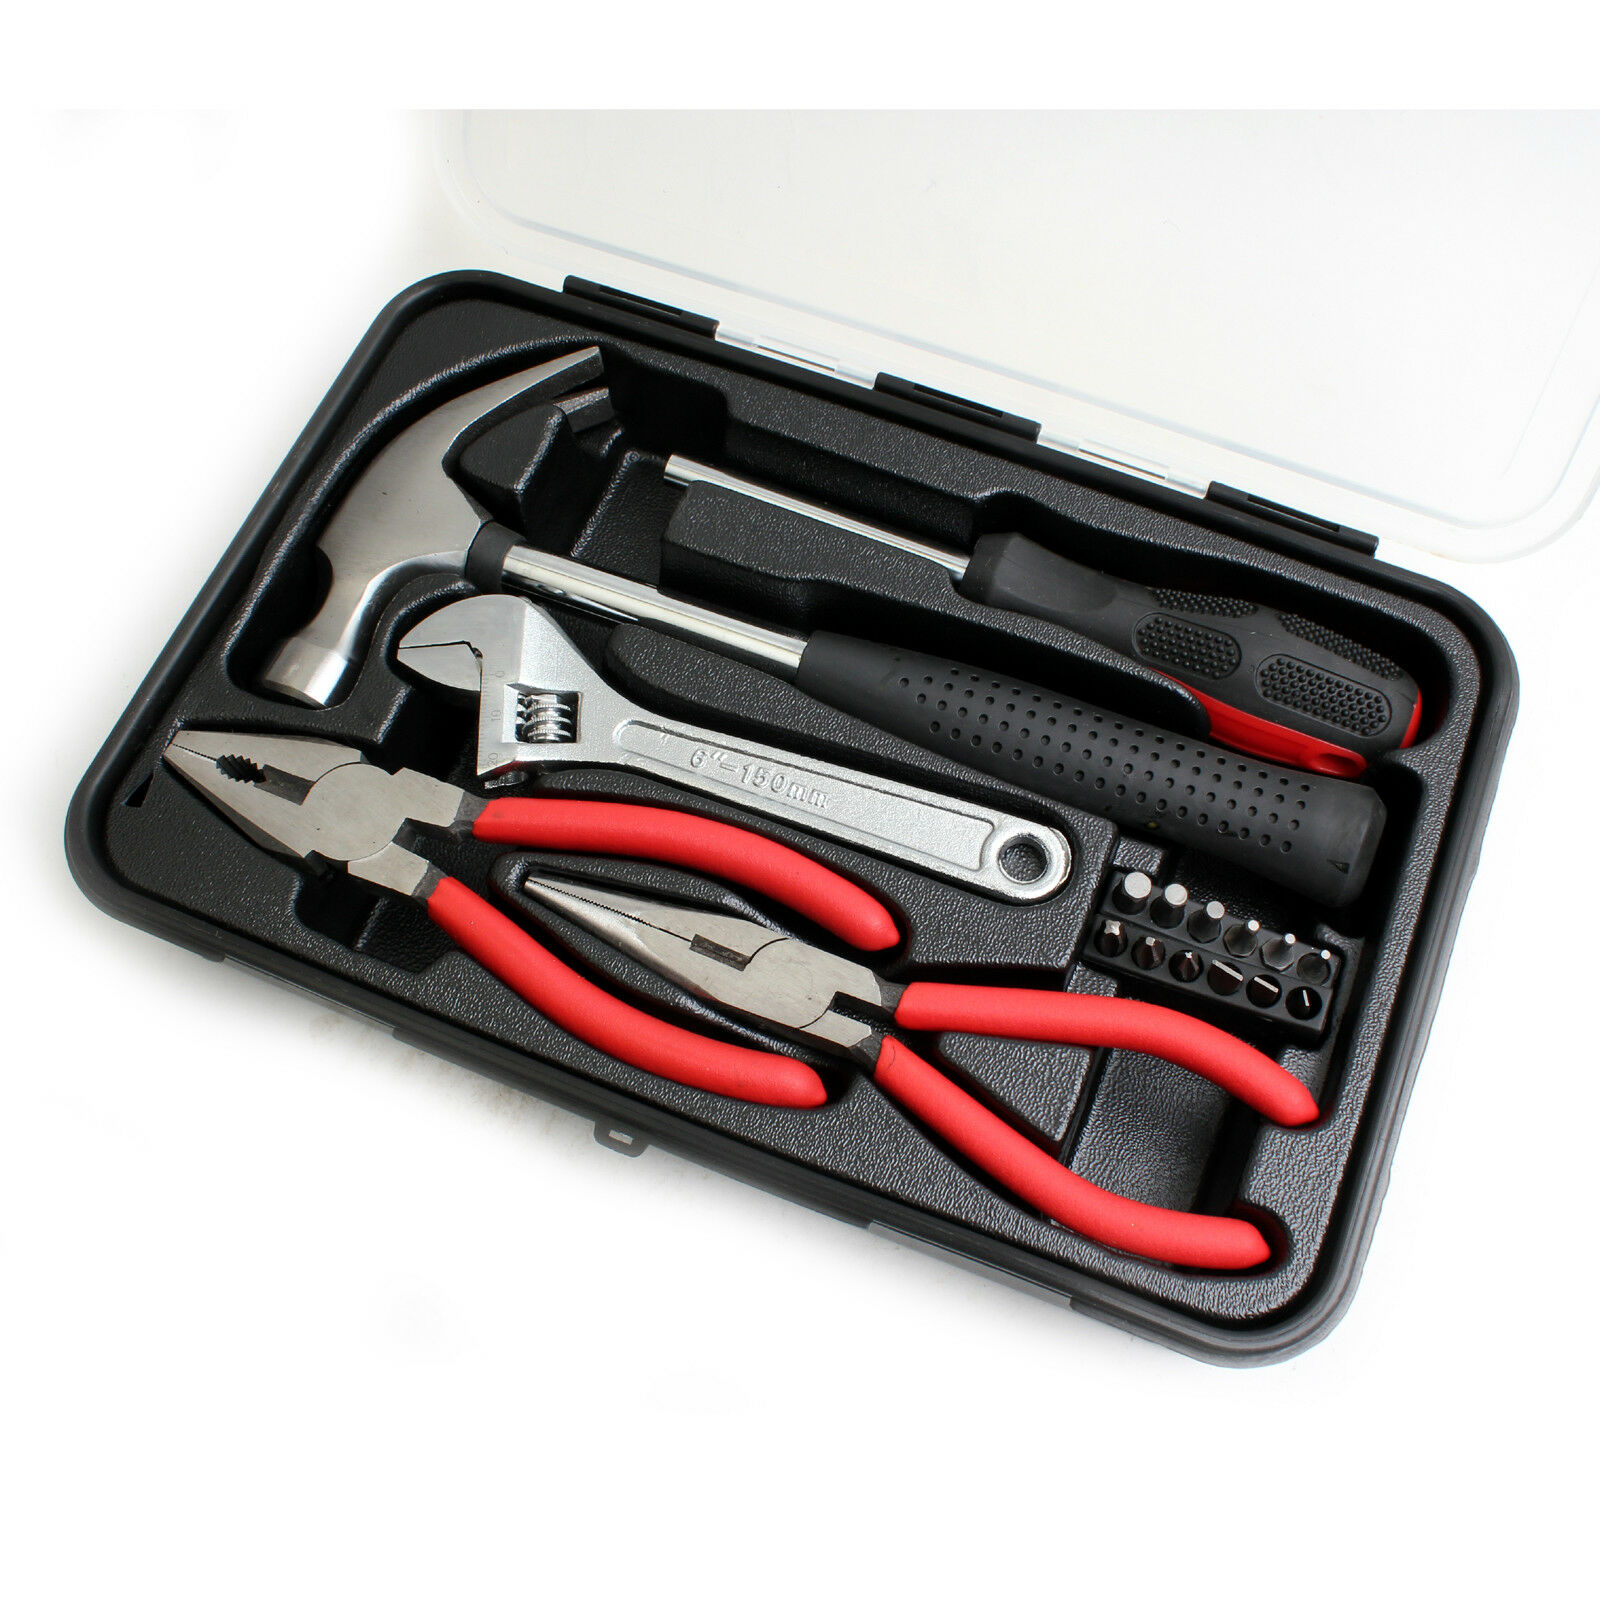 Household Maintenance Repair Kit Tool Set 17PCS SM-TS17